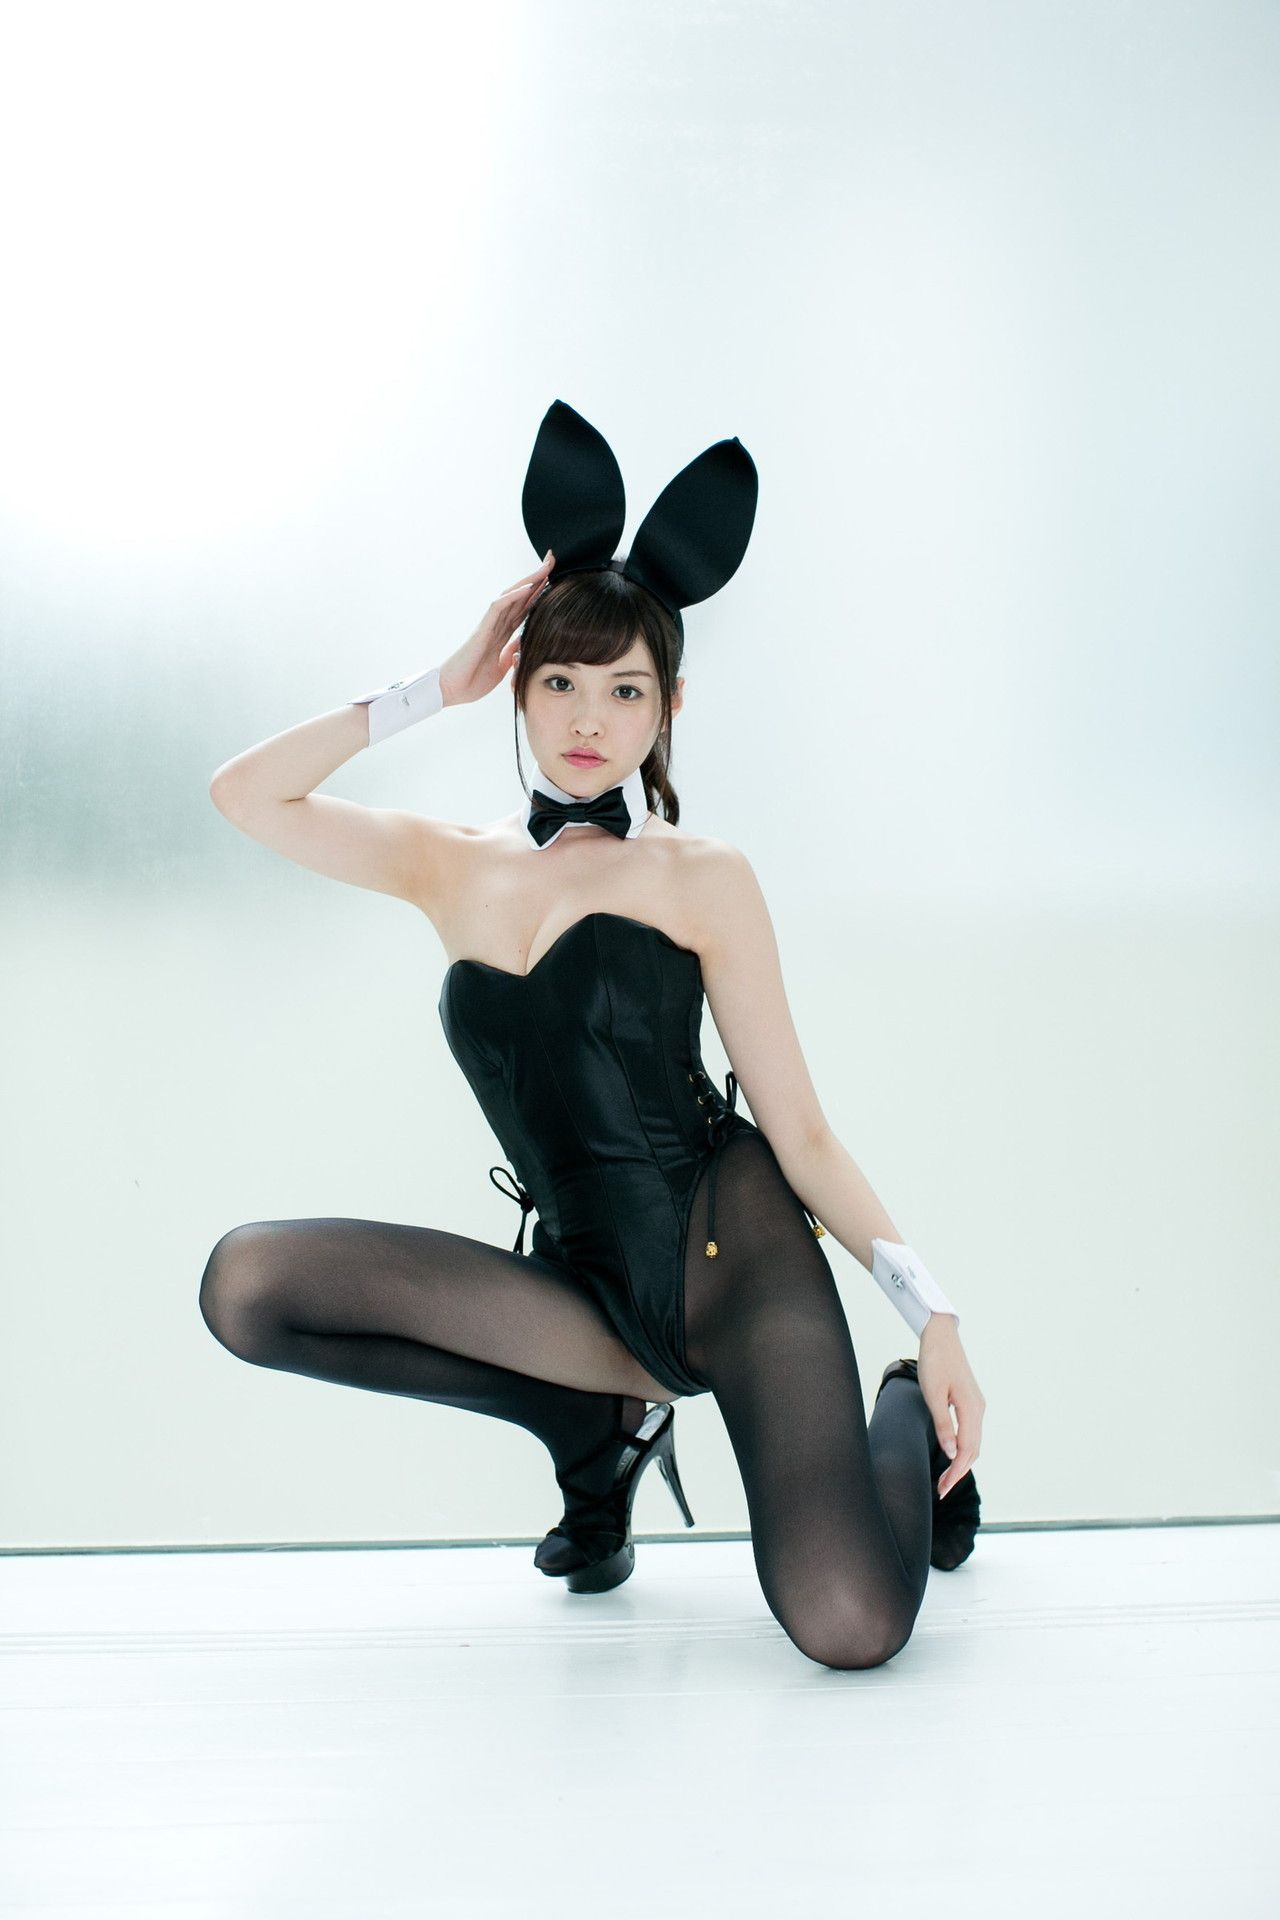 Asian bunny girl legs images 598